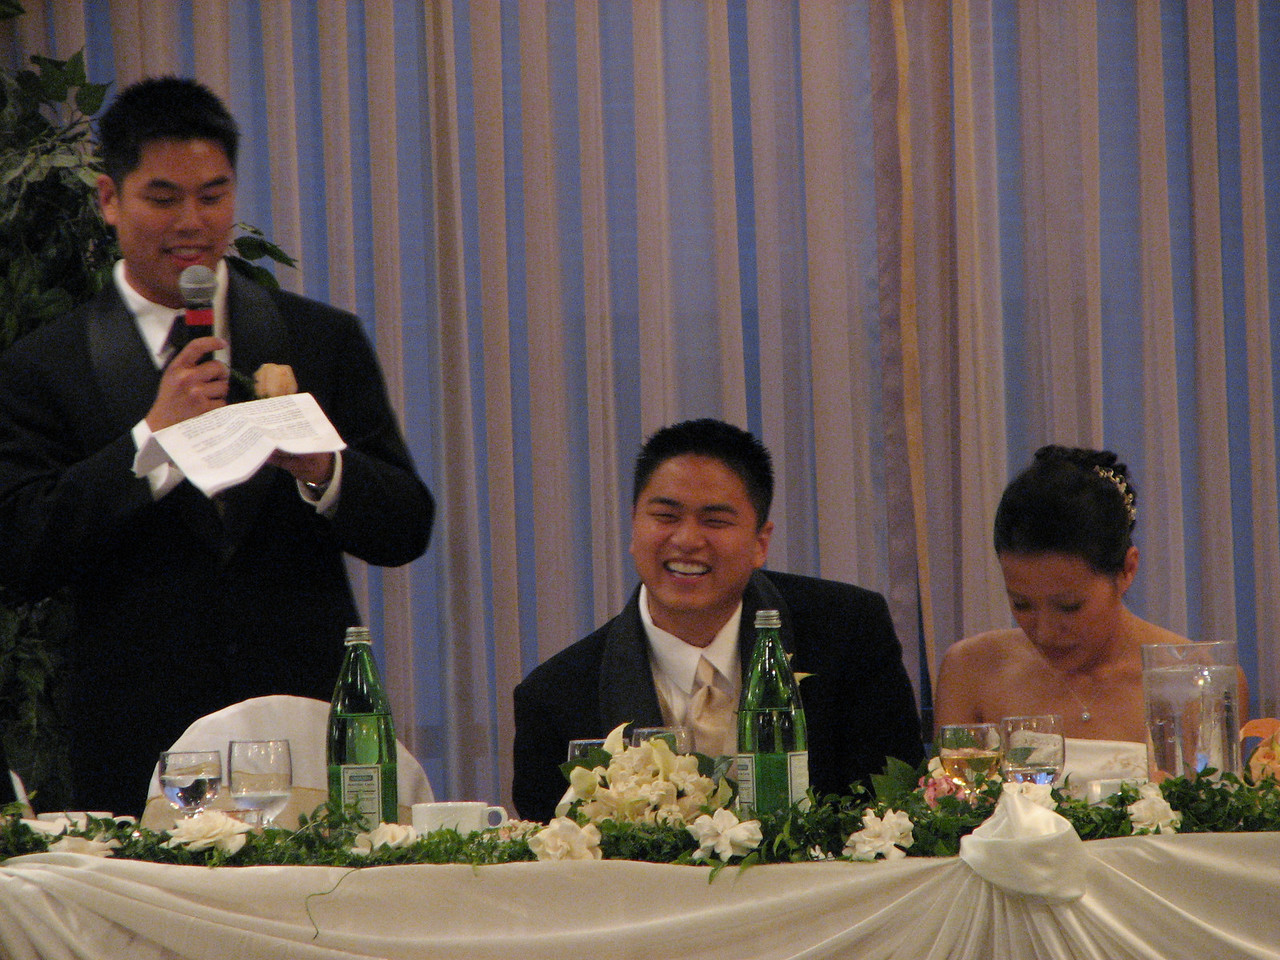 2007 06 09 Sat - Best man toast 2 - Johnny Chen, Danny & Jessica Chen